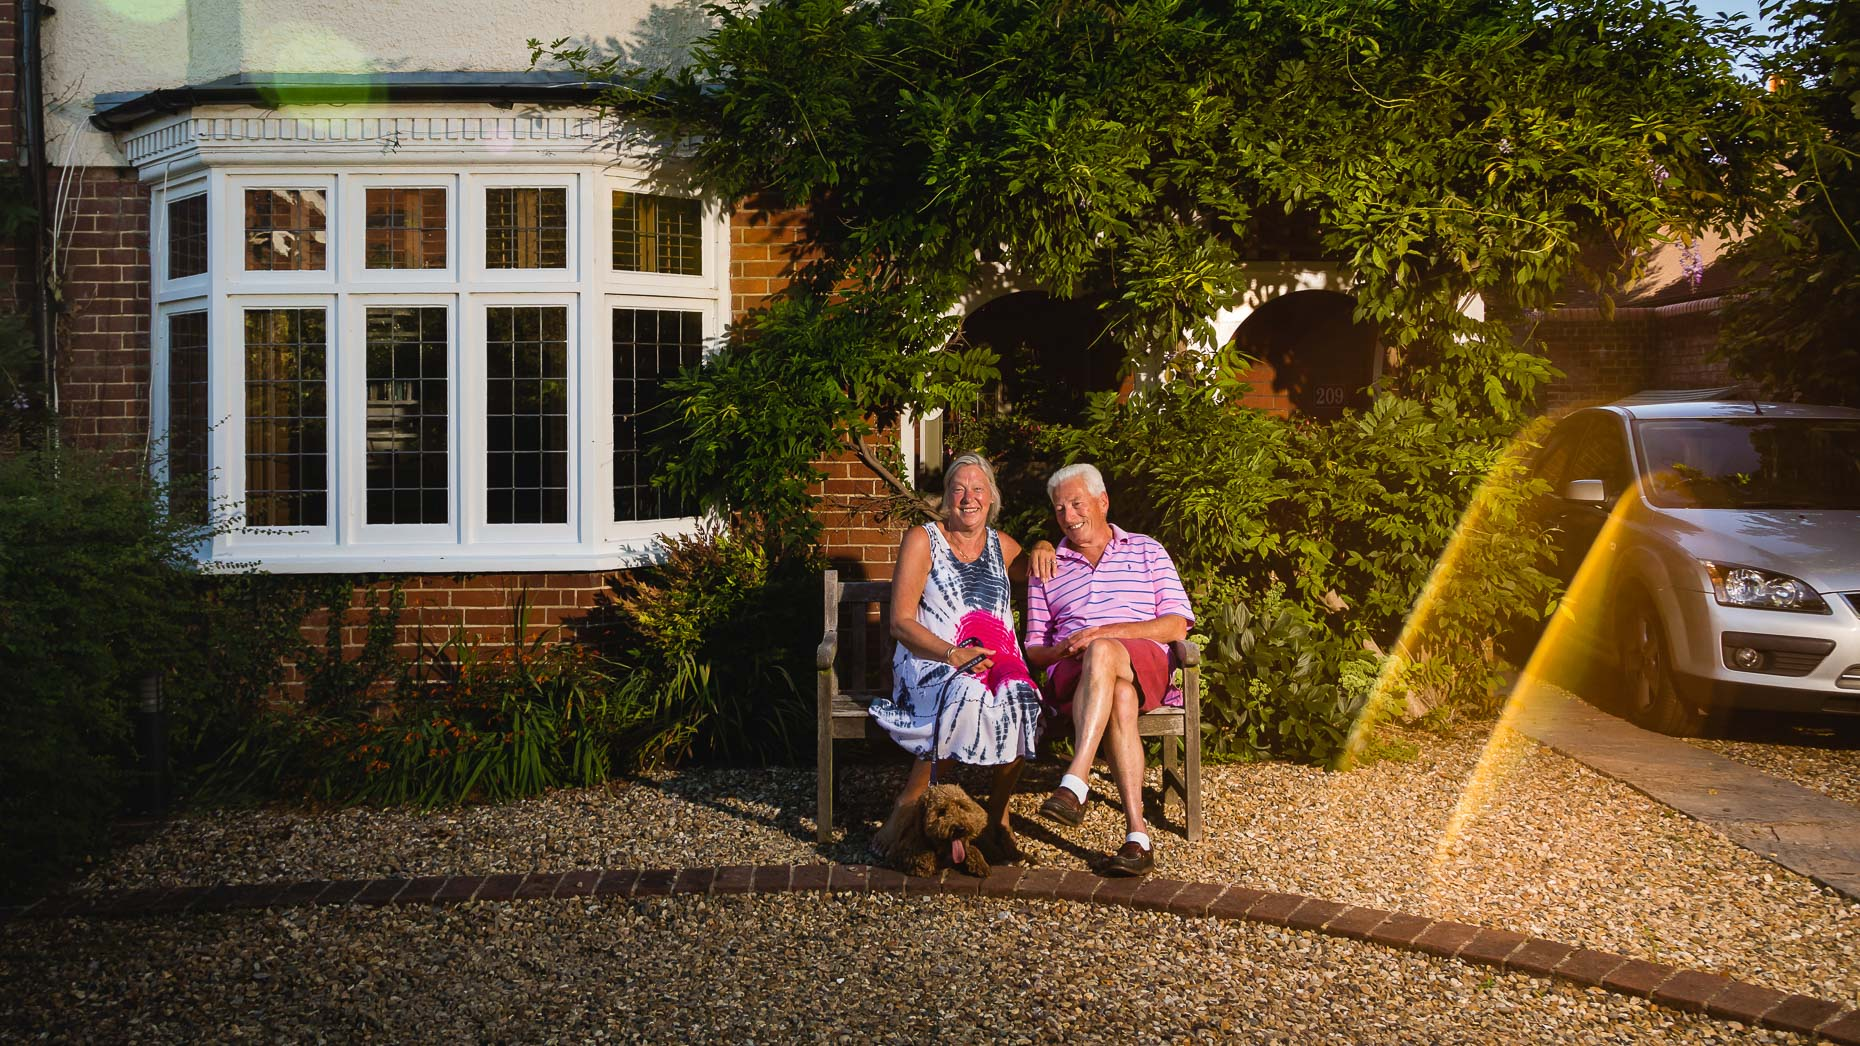 Ashtead Doorstep Portraits 77